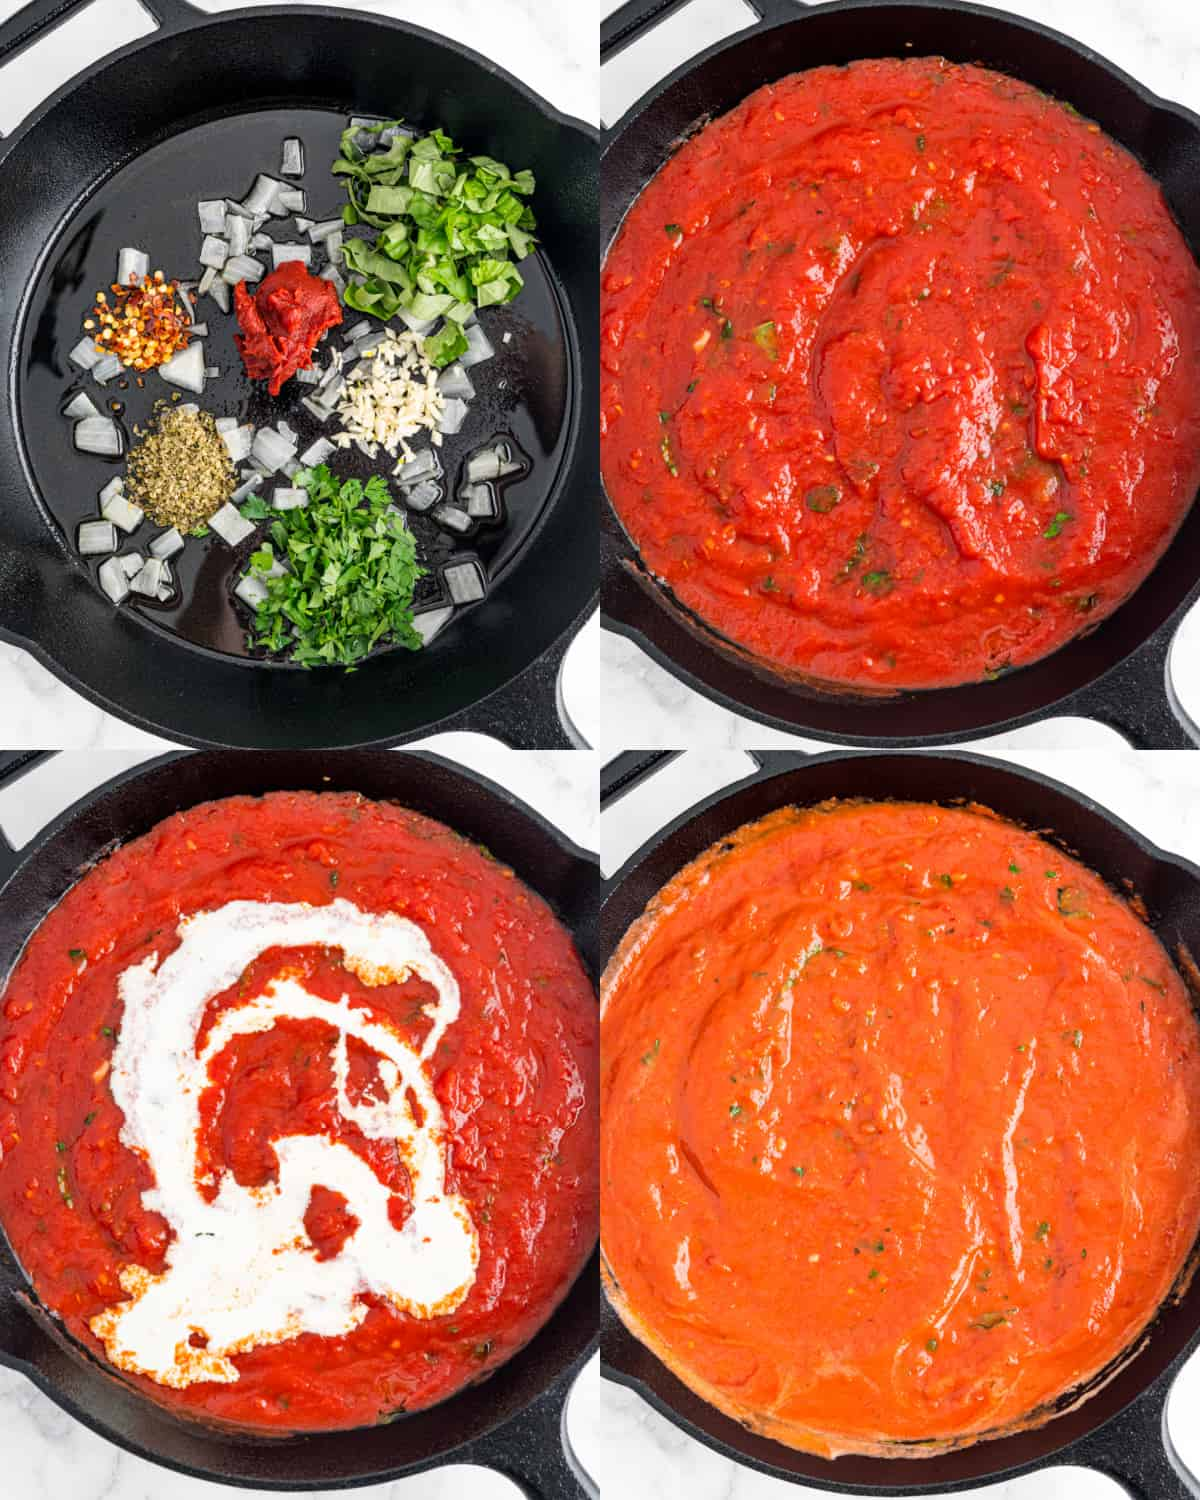 cooking tomato sauce in a skillet